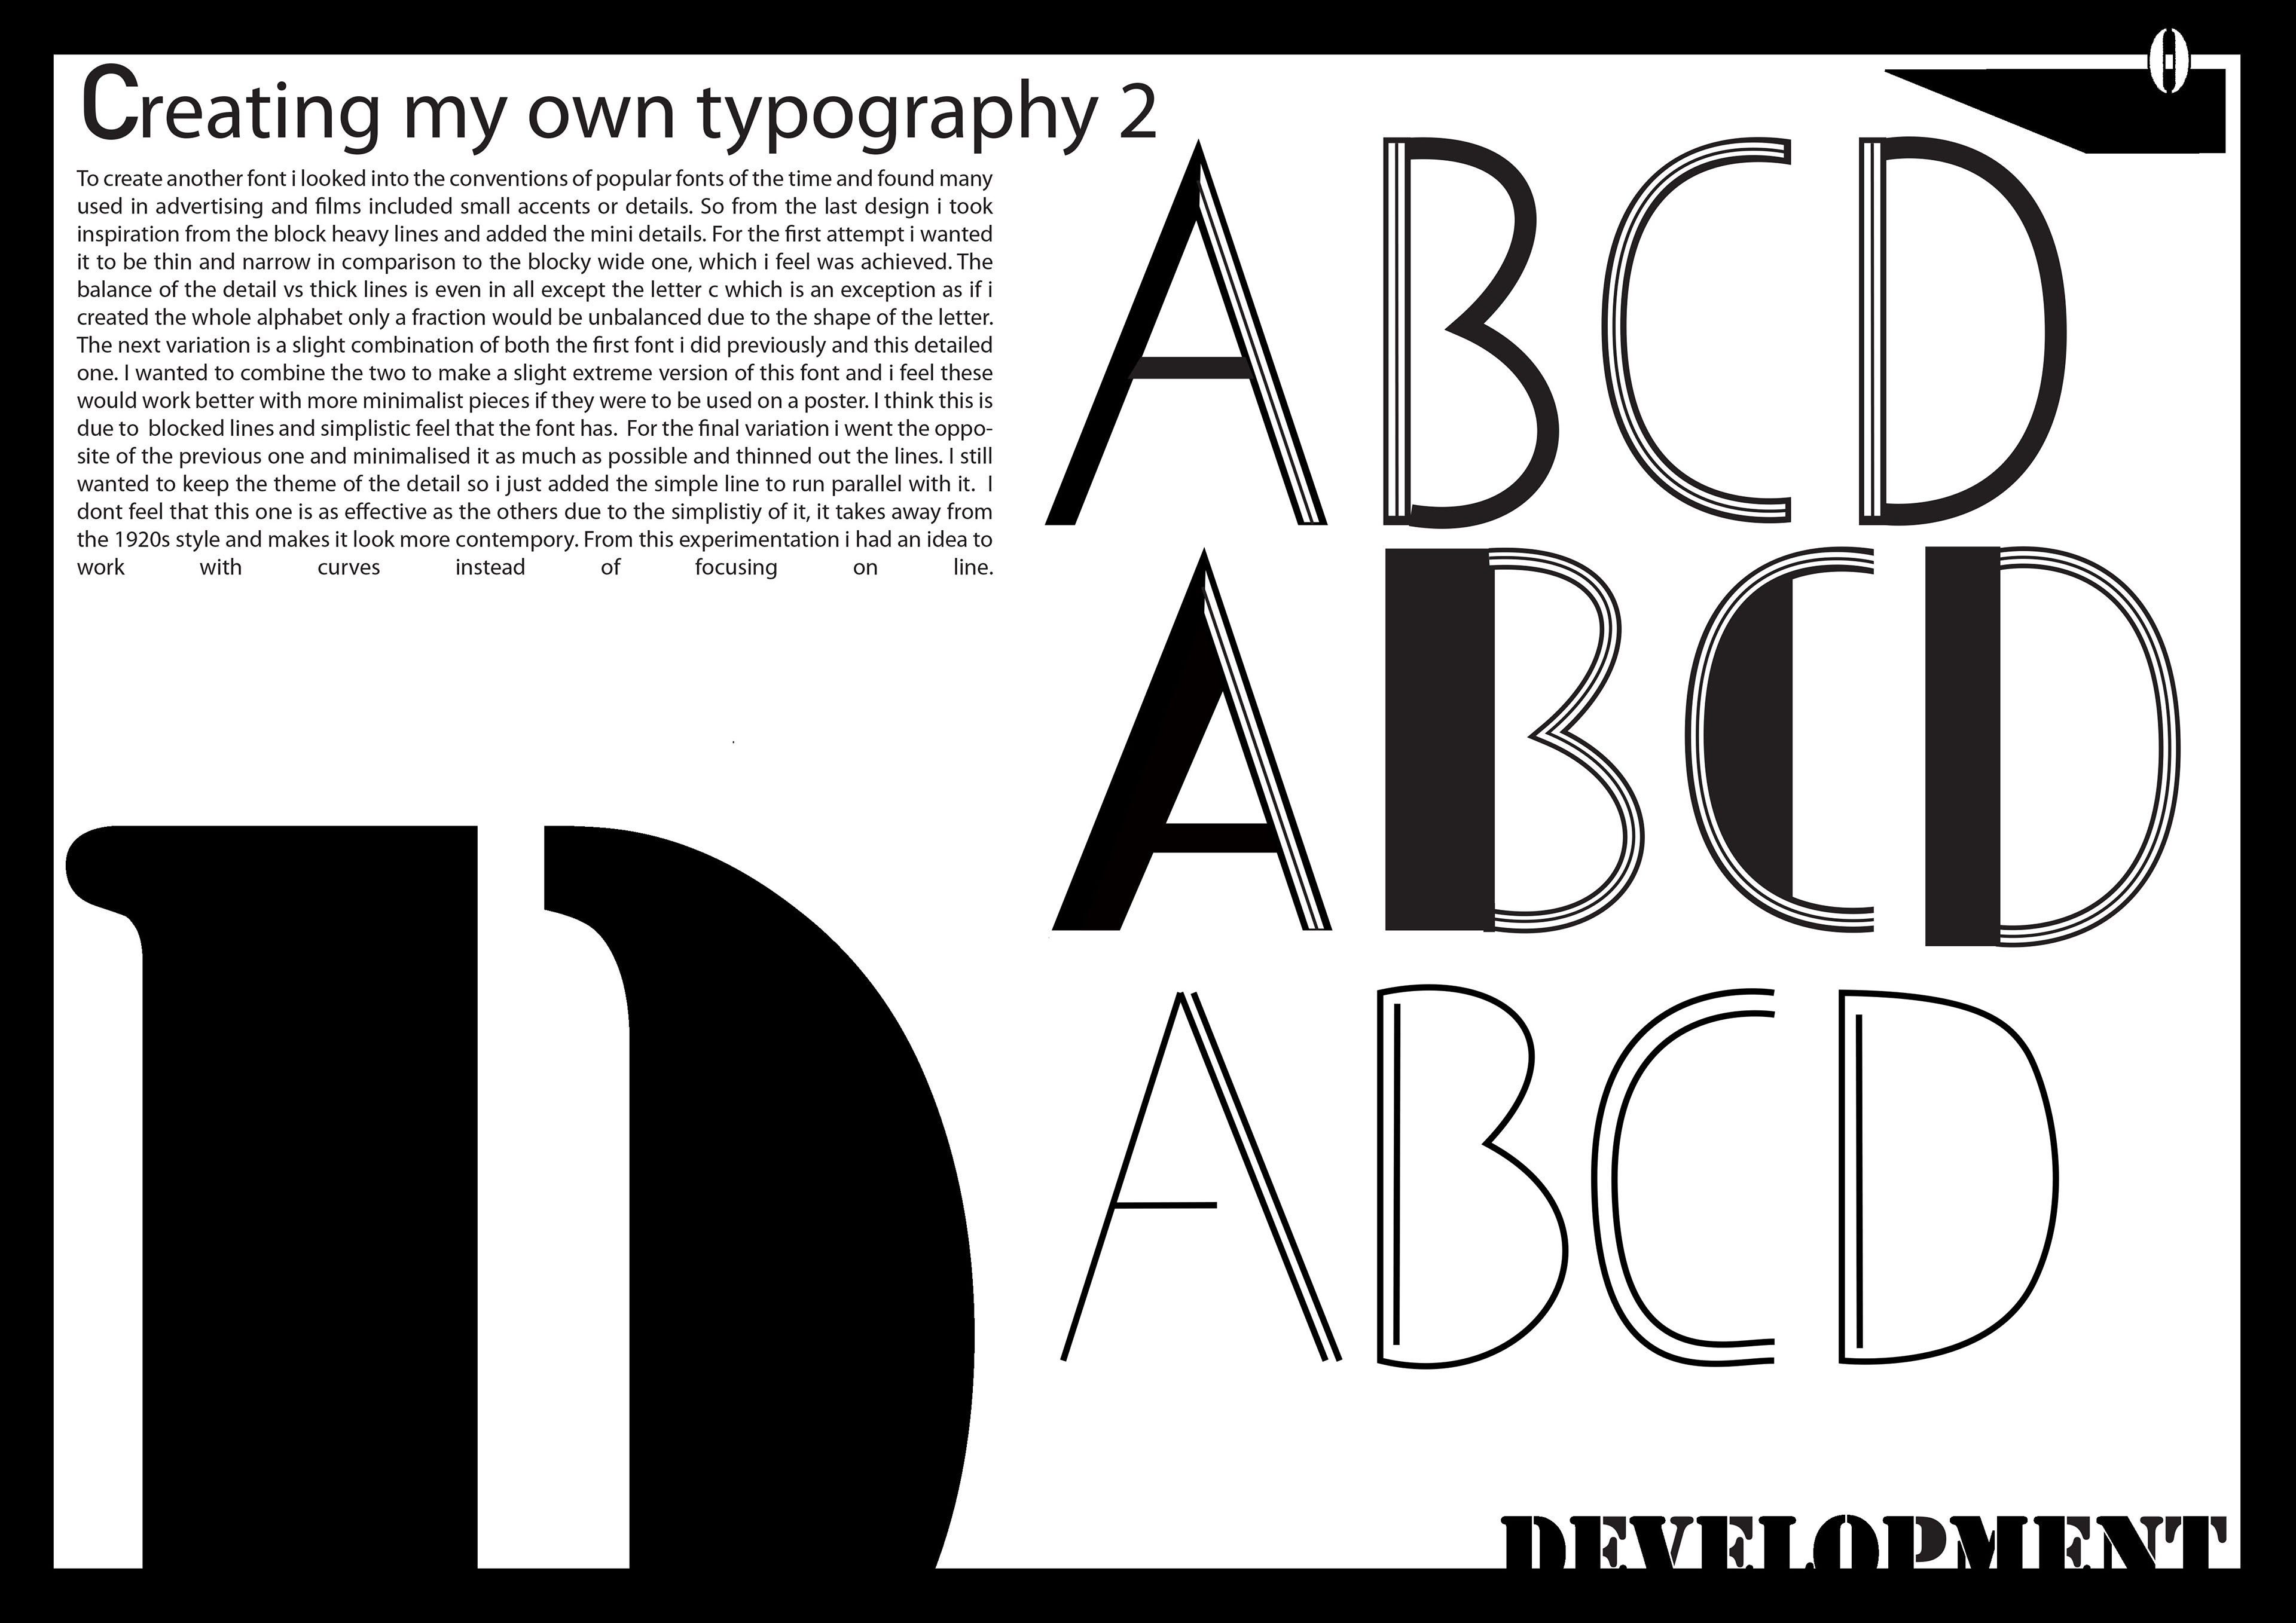 Research And Development Into 1920s Typography